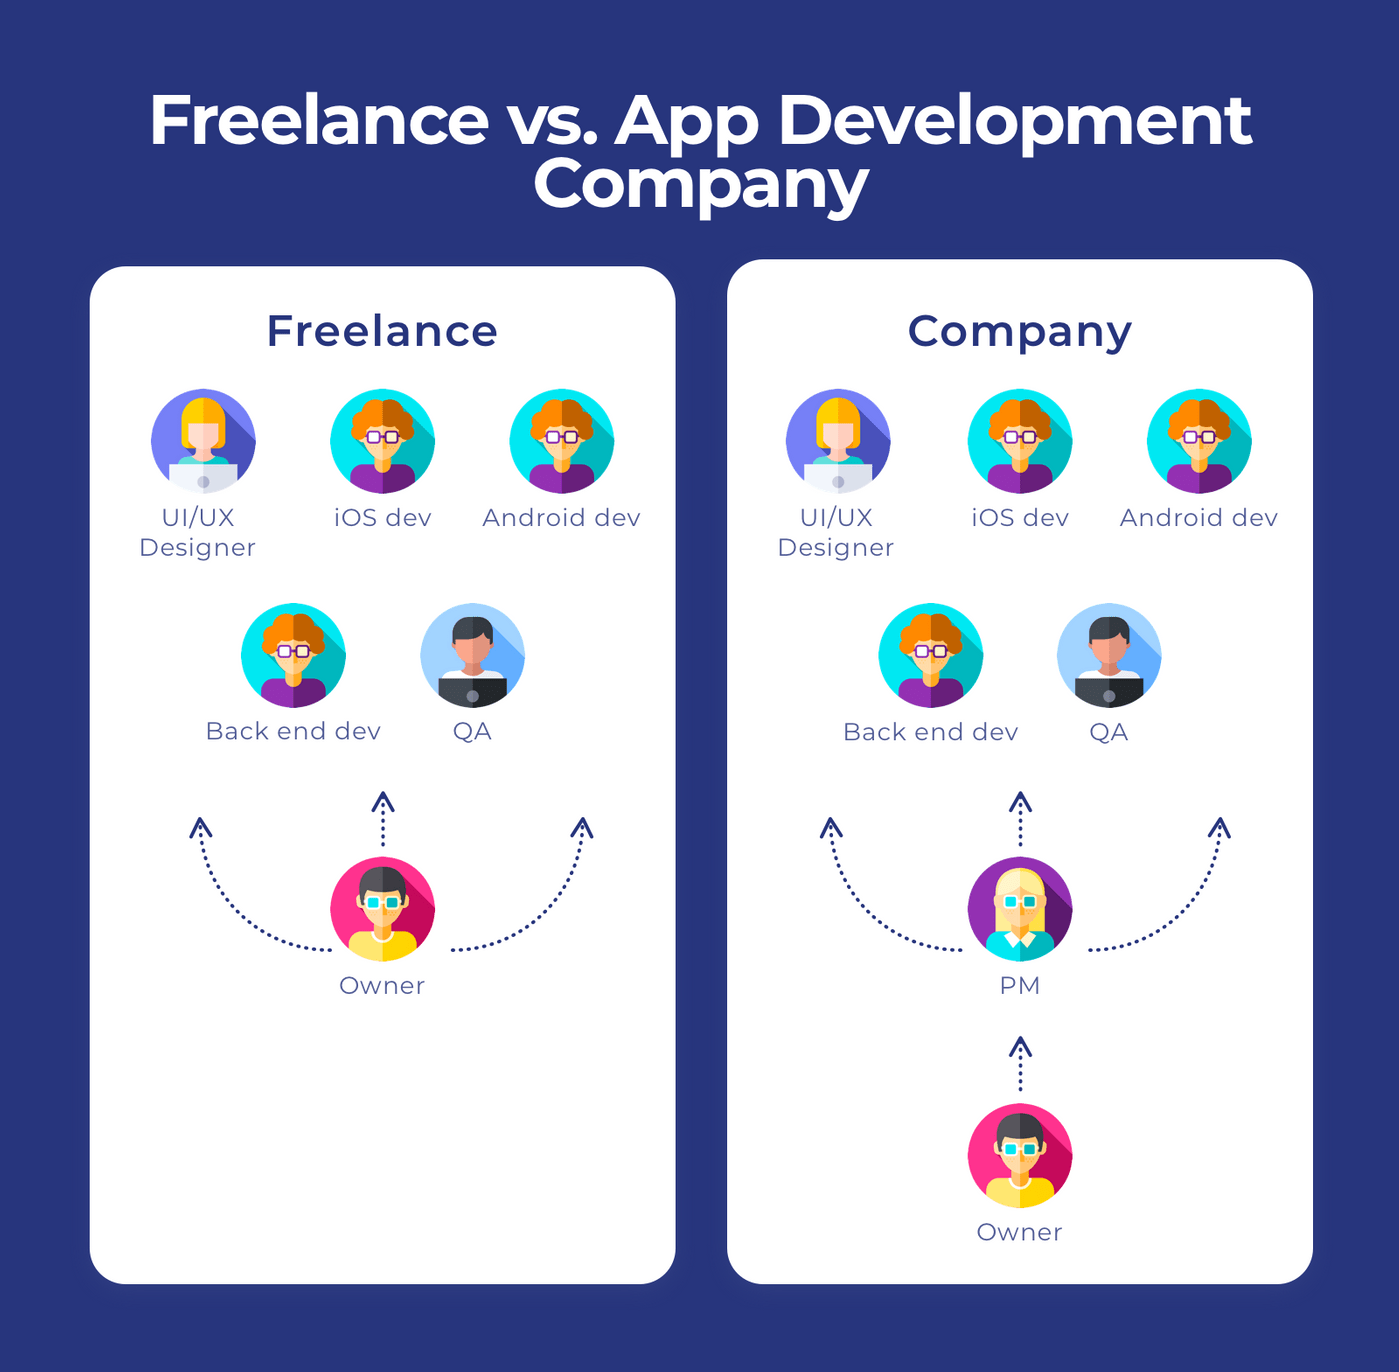 Freelance vs App Development Company